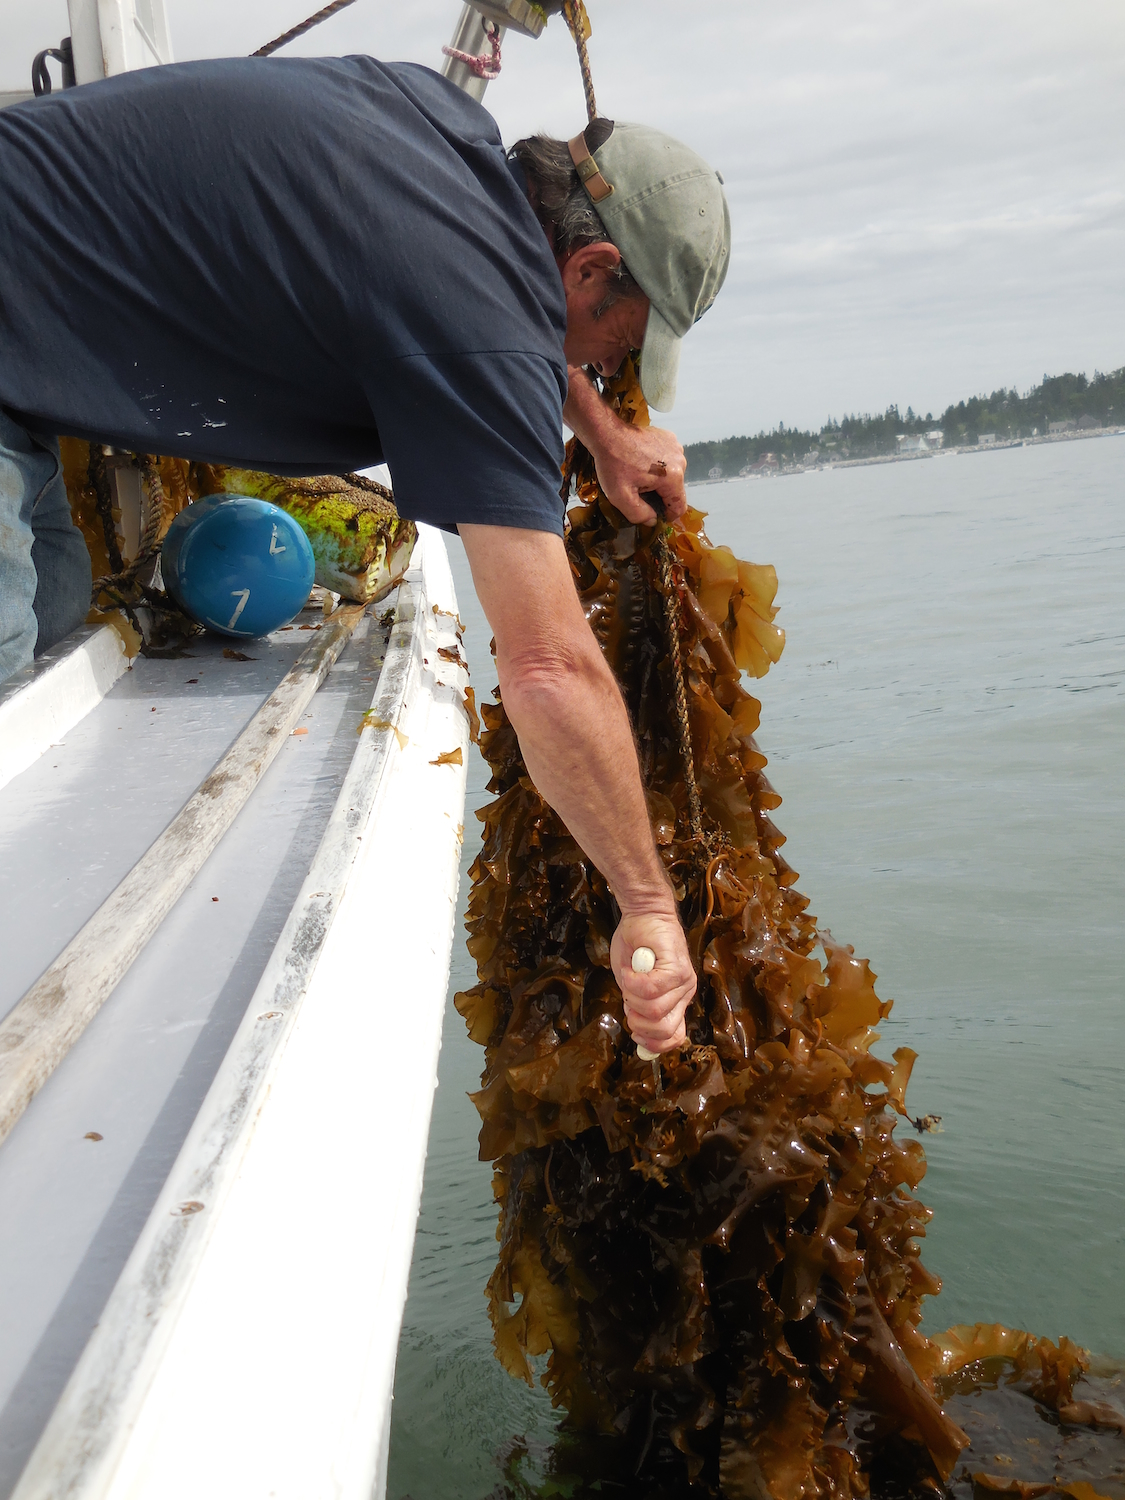 Some of the bags were completely covered in fast growing seaweed!